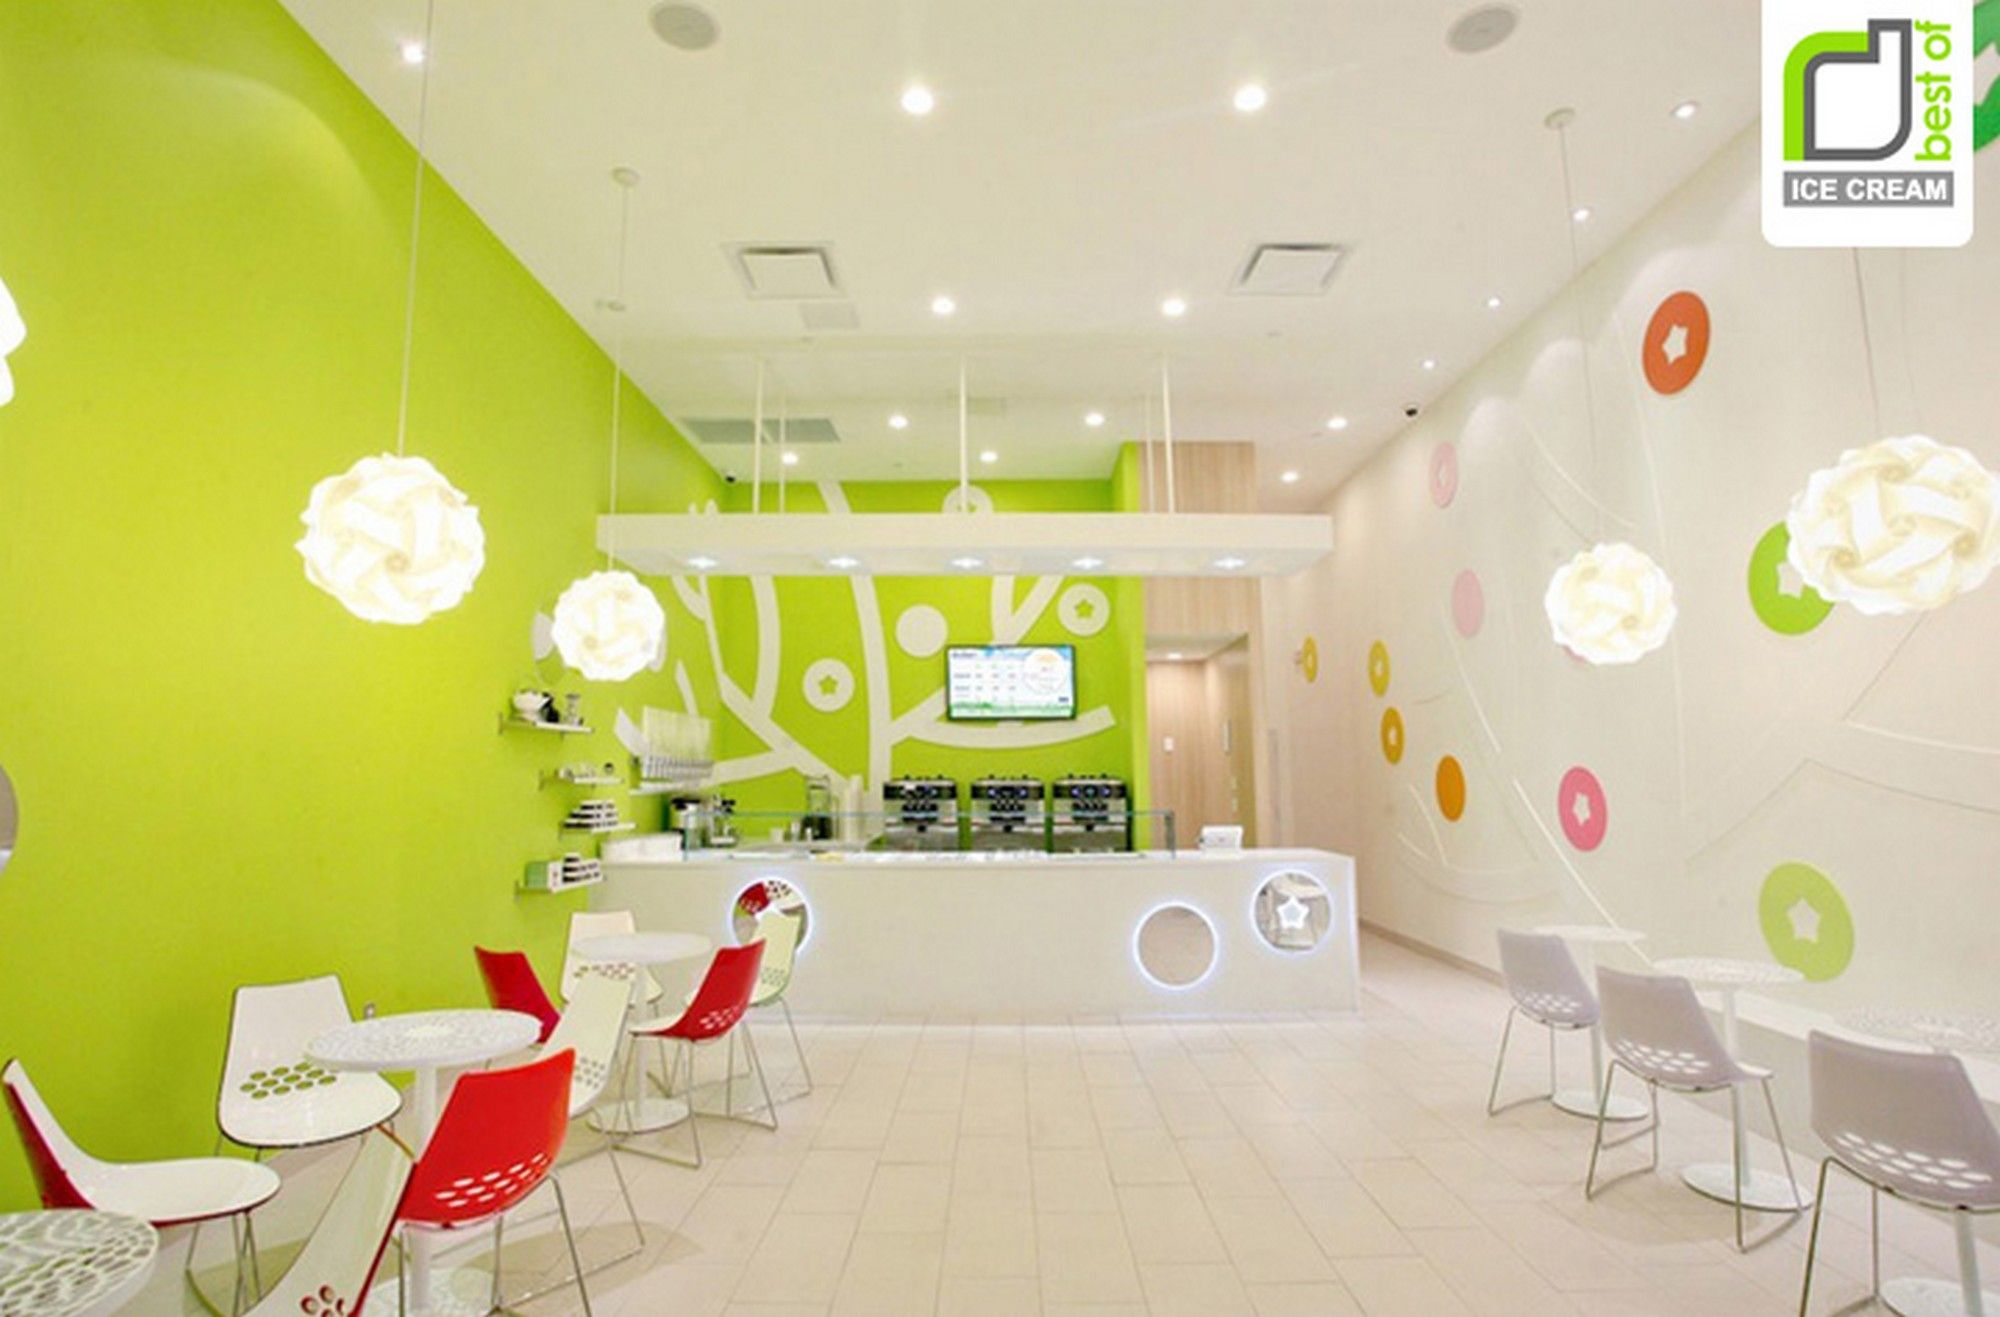 Decorating cool interior design of an ice cream shop with green wall paint ideas and small round table sets best ice cream shop design ideas